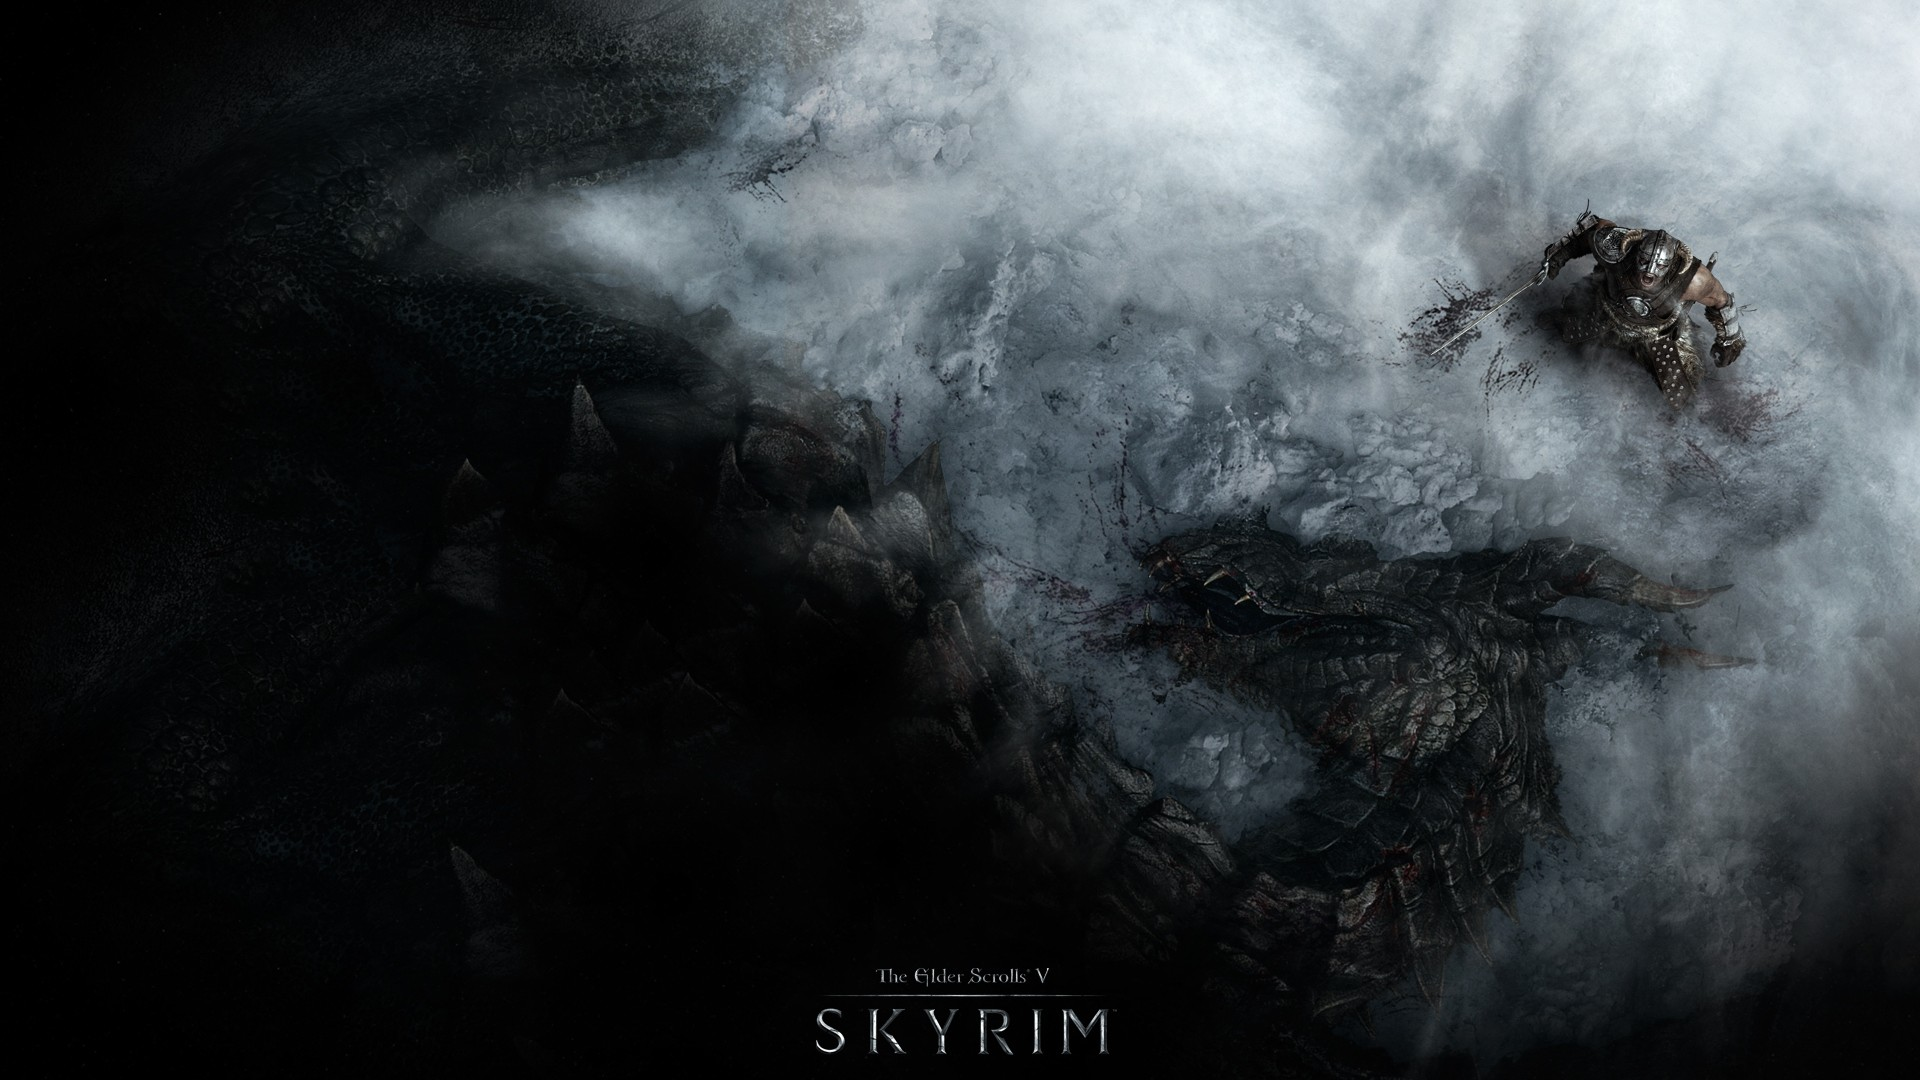 The Elder Scrolls V: Skyrim wallpaper top view